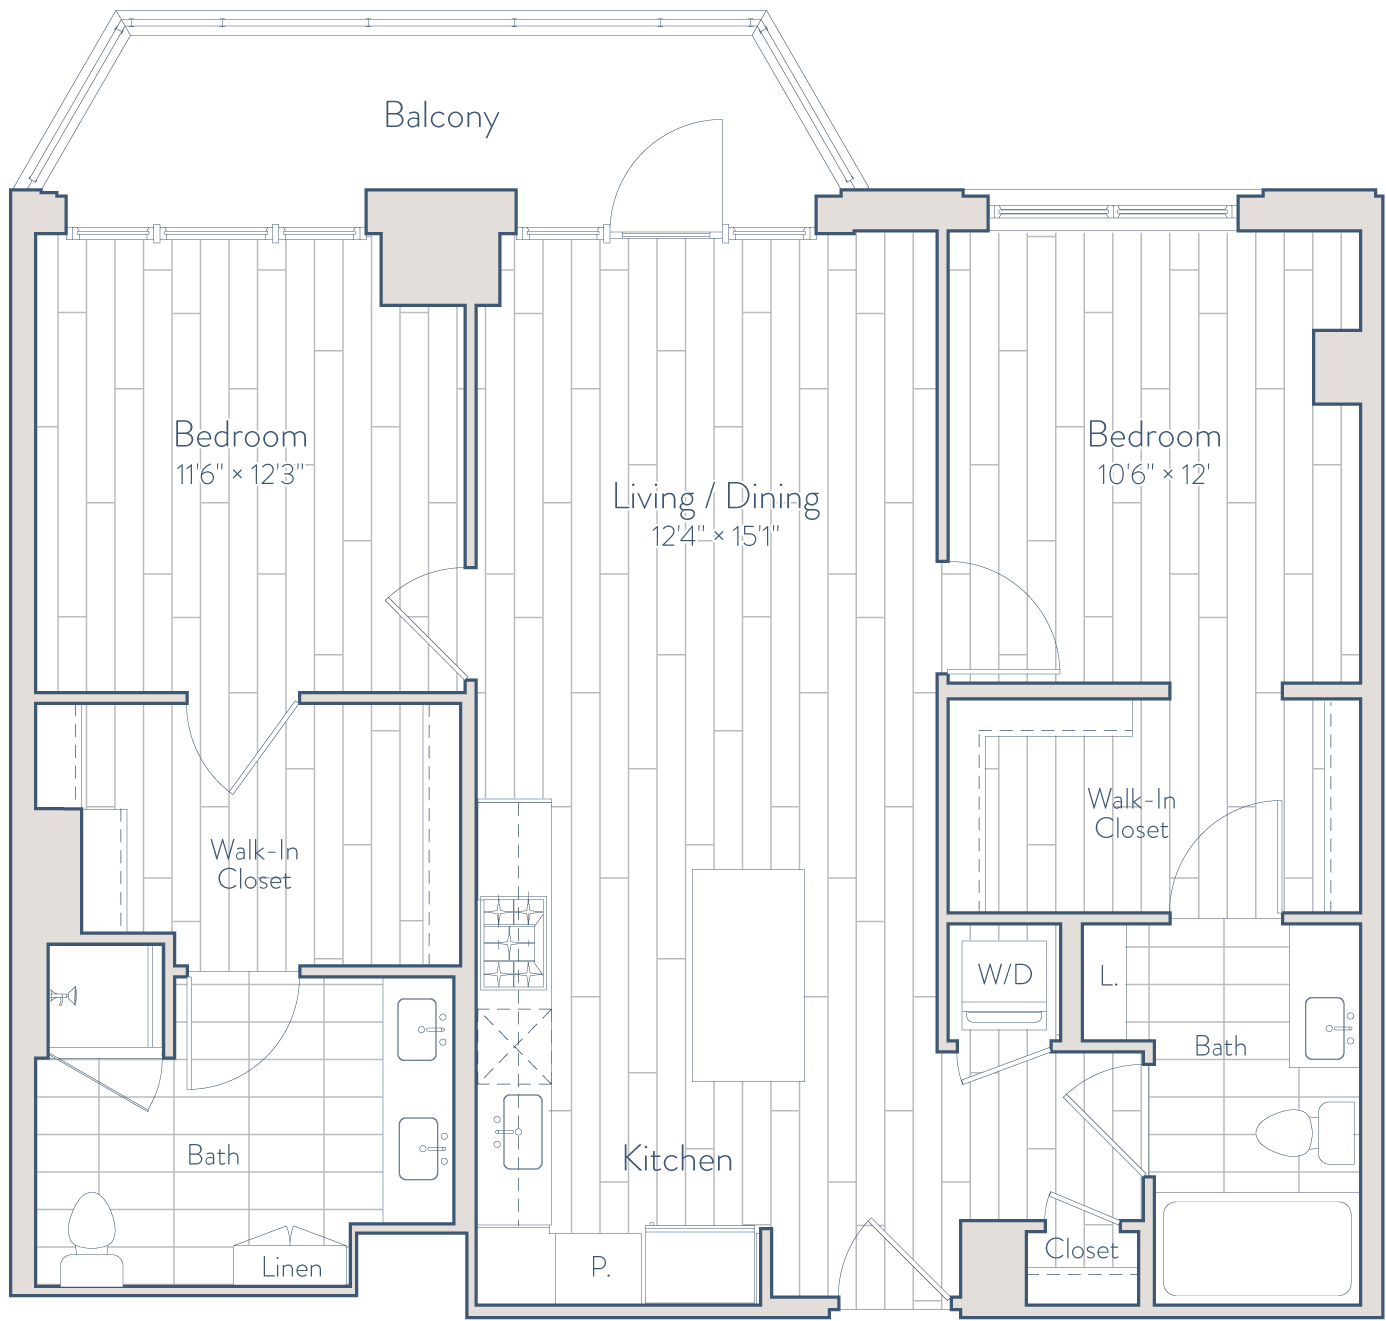 Floor plan of apartment 1132